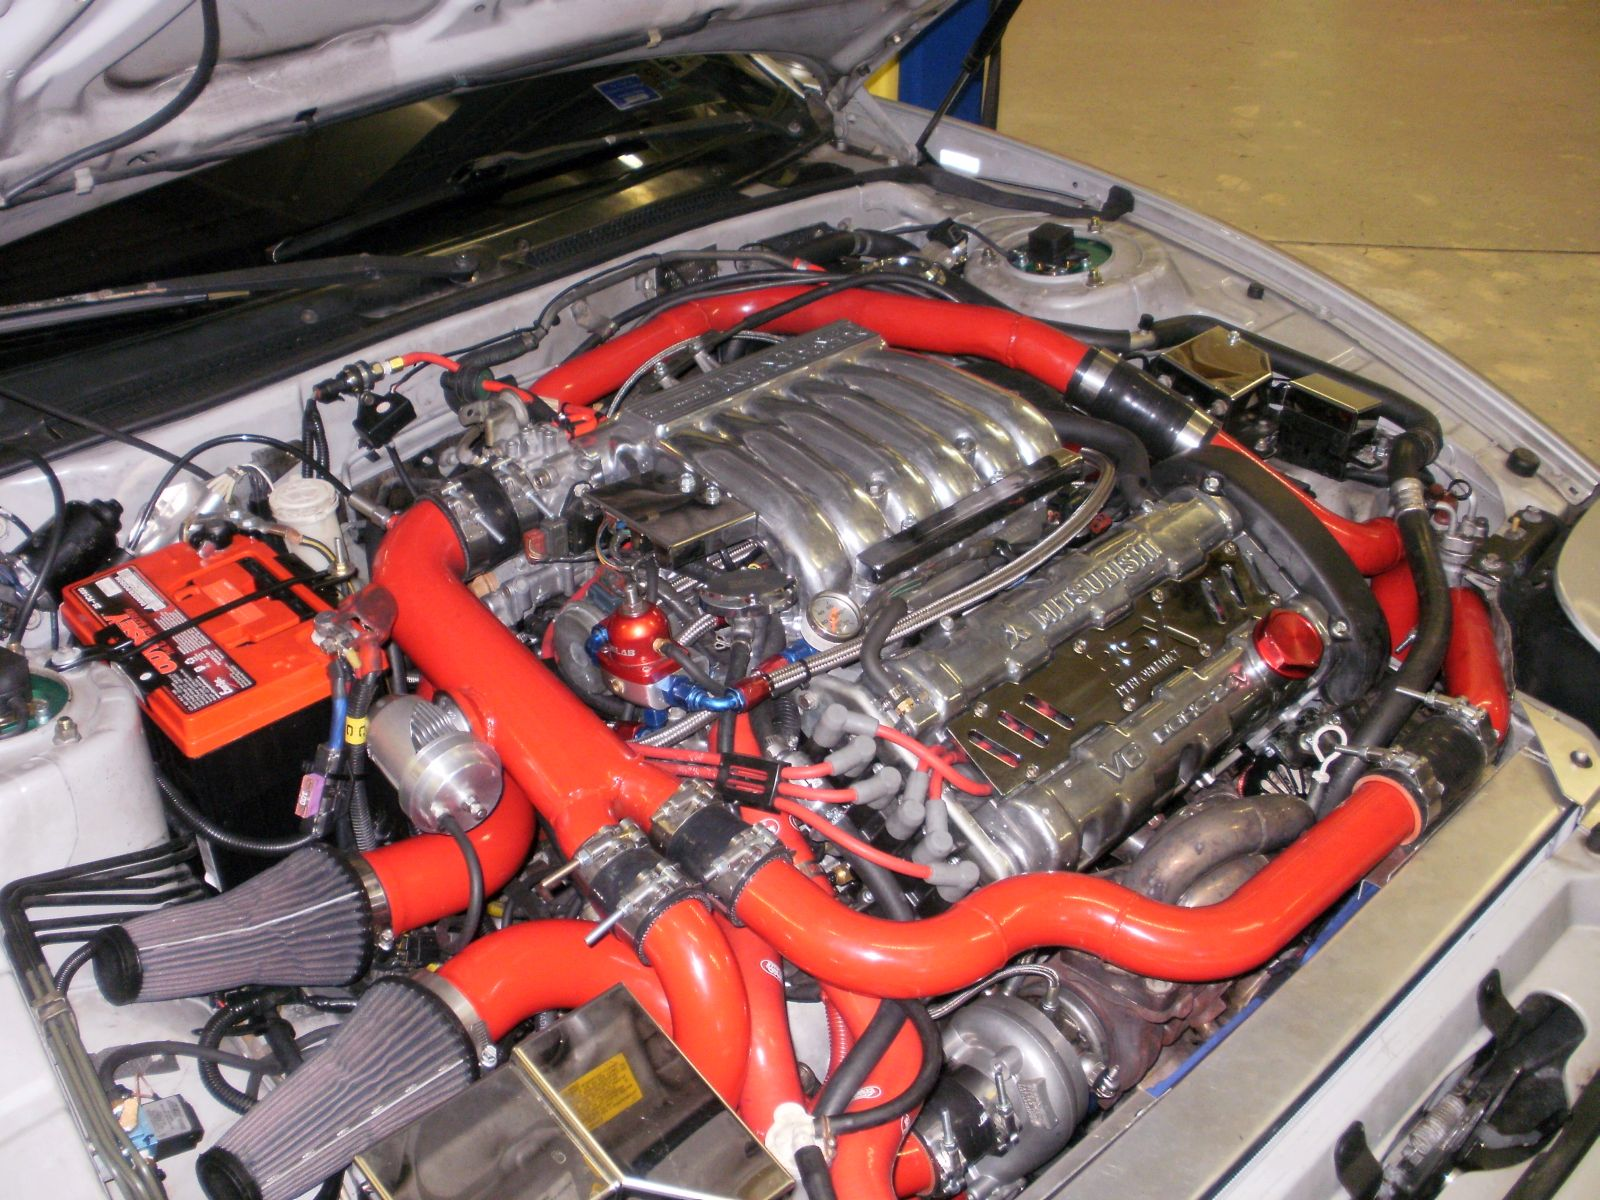 300zx Rear Engine Diagram Get Free Image About Wiring